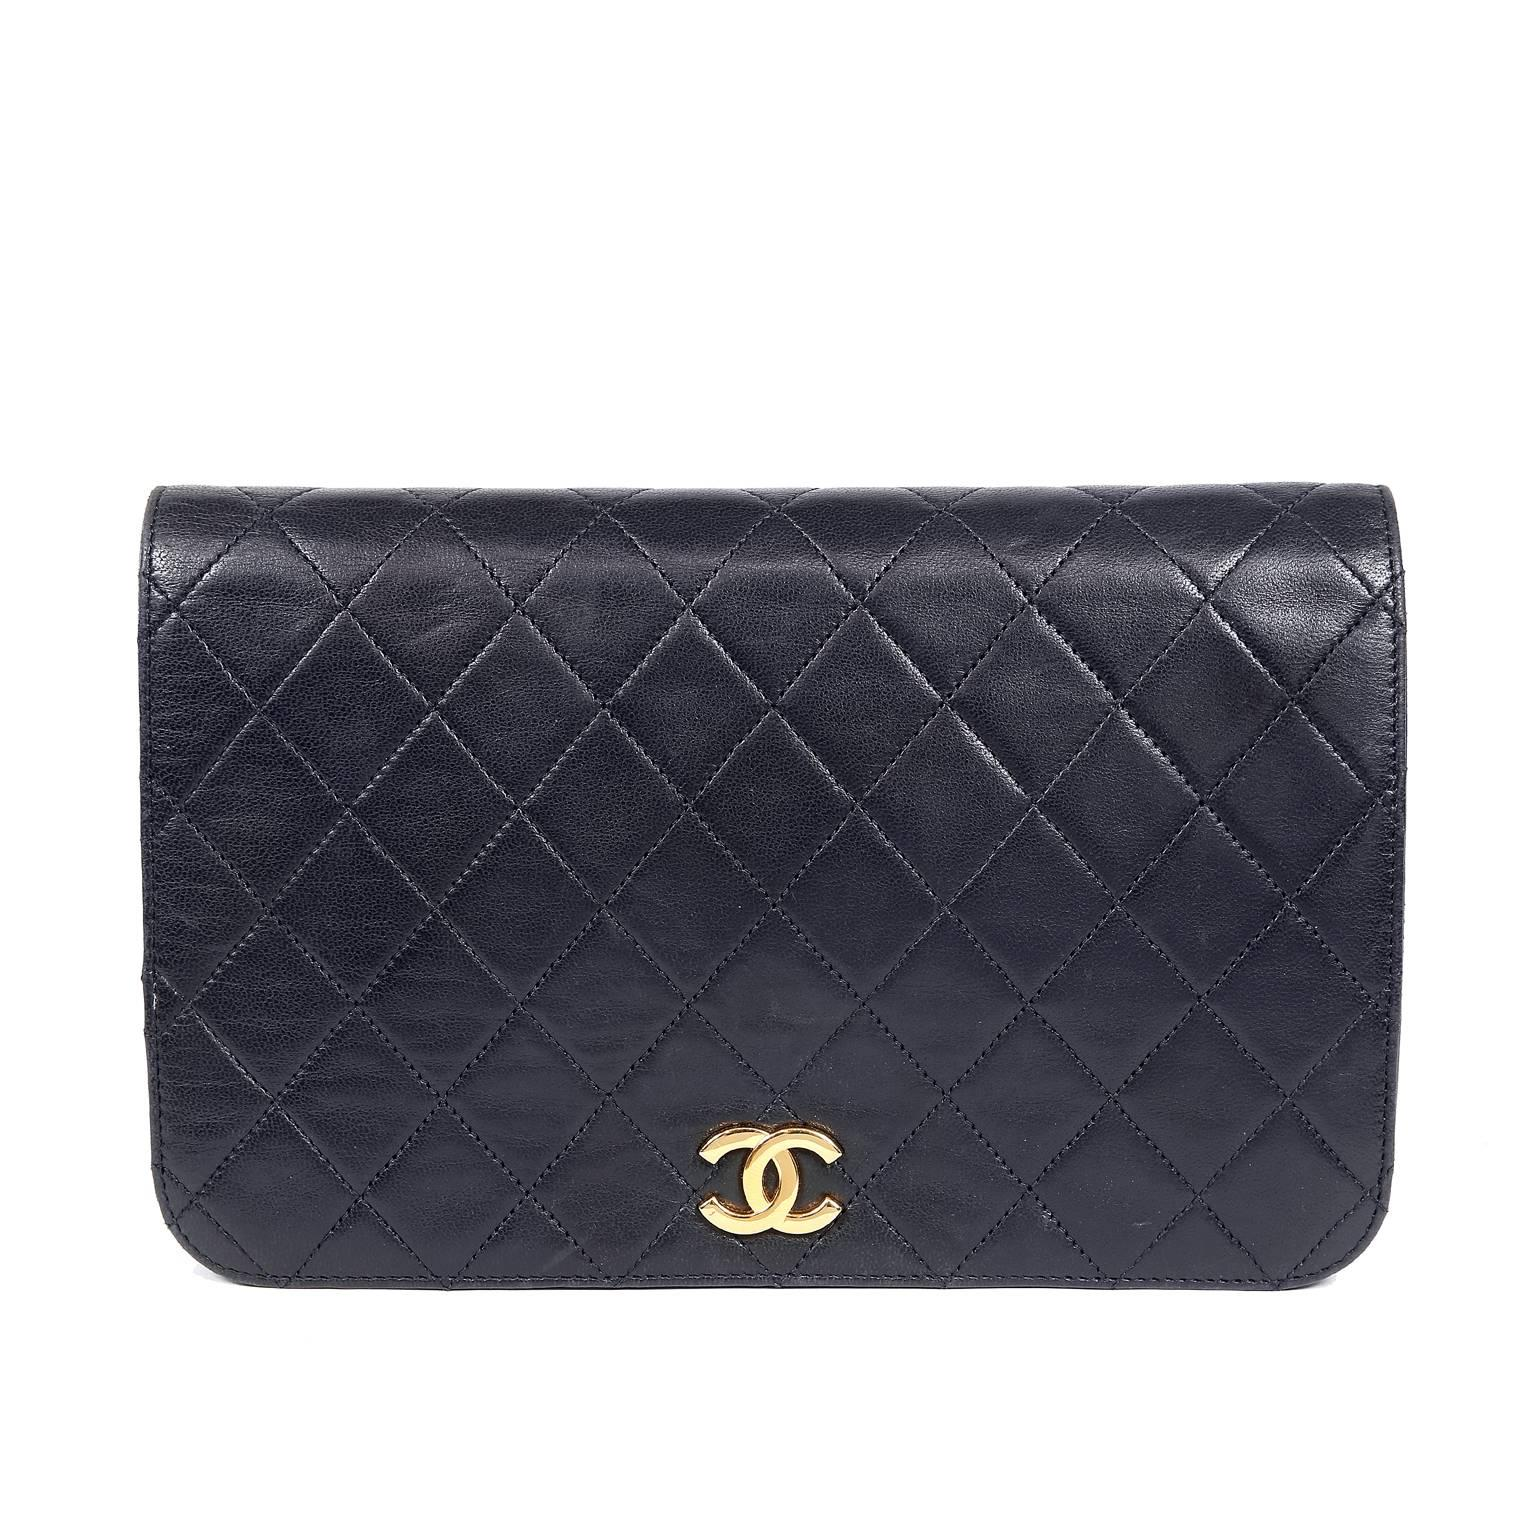 c6c3c42175de Chanel Black Leather Vintage Clutch with Strap at 1stdibs